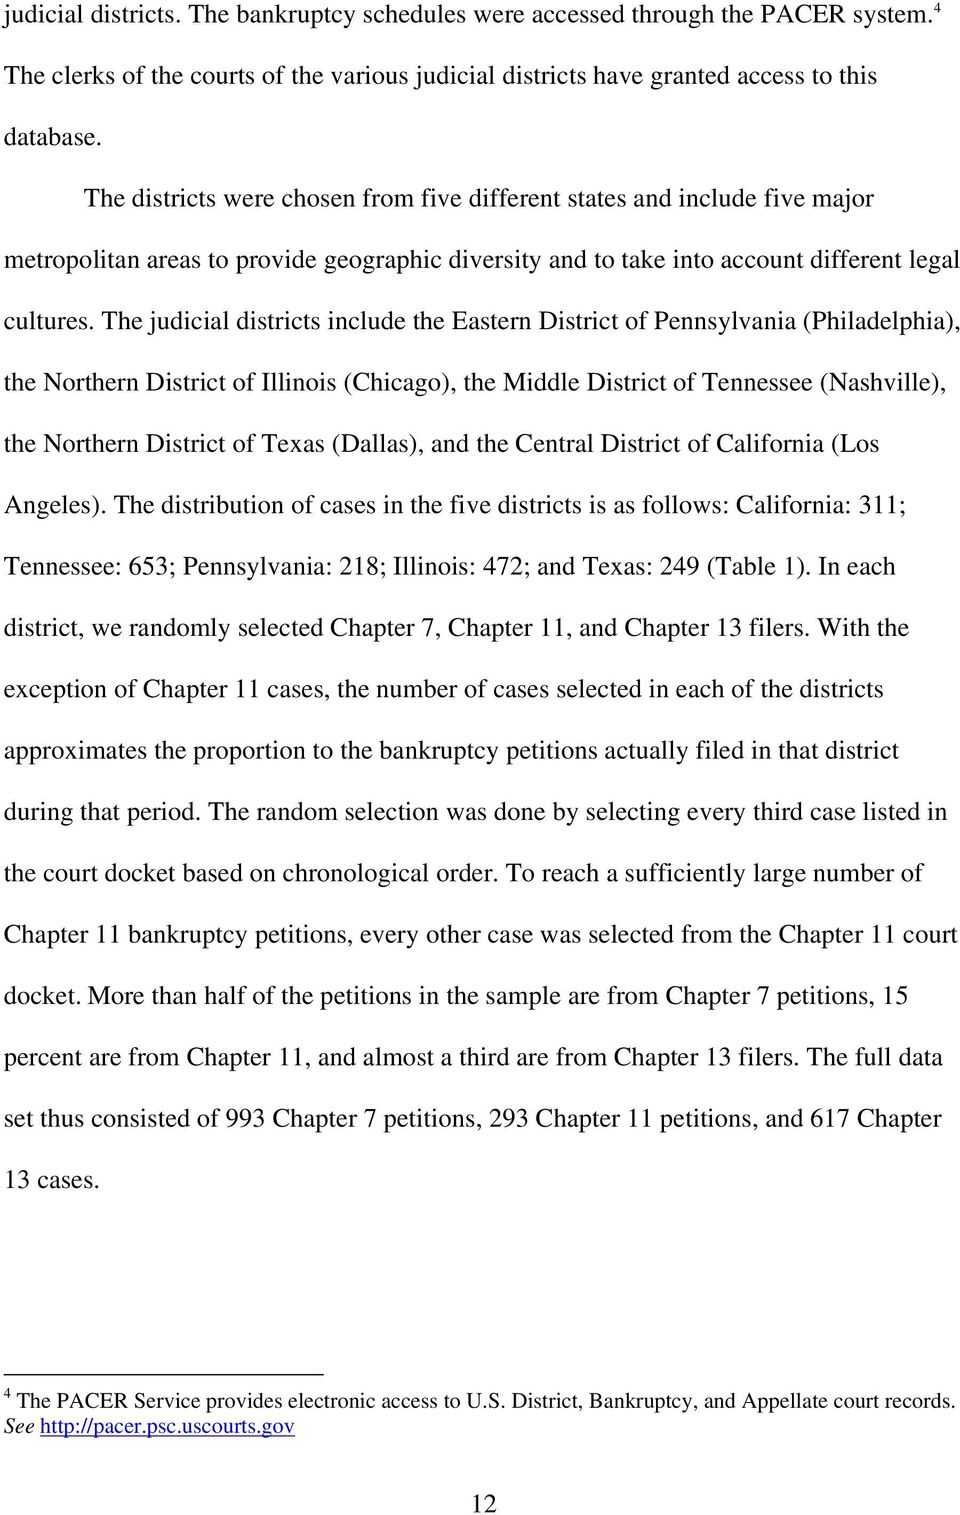 The judicial districts include the Eastern District of Pennsylvania (Philadelphia), the Northern District of Illinois (Chicago), the Middle District of Tennessee (Nashville), the Northern District of